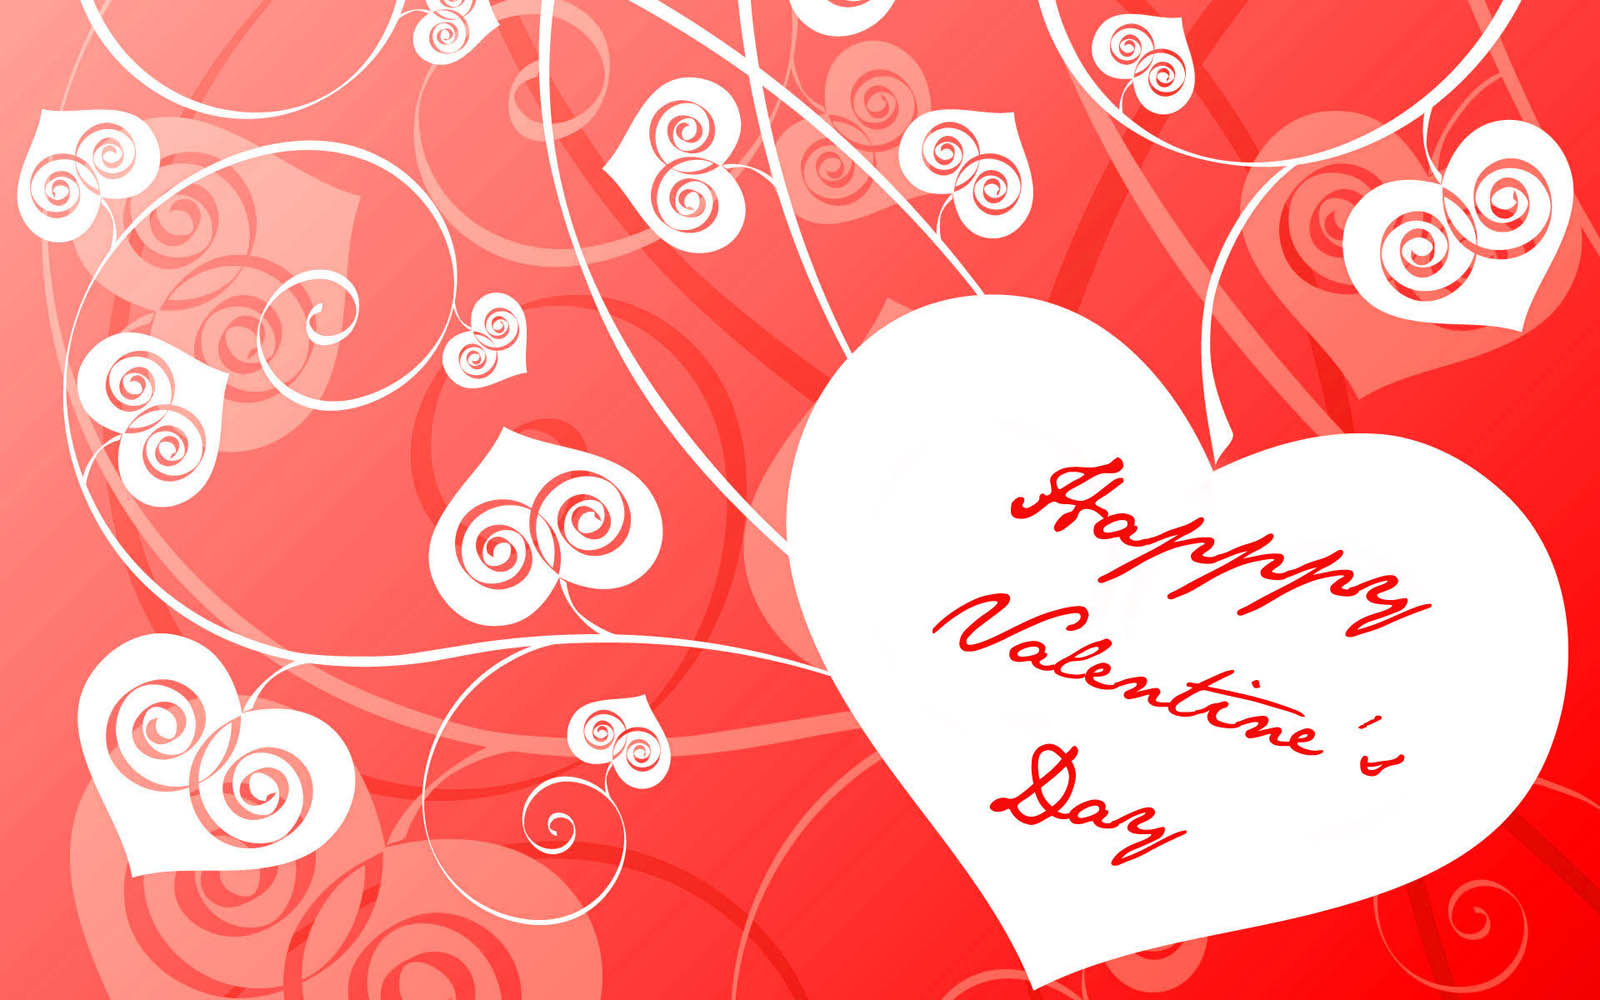 valentines day backgrounds wallpapers - photo #10